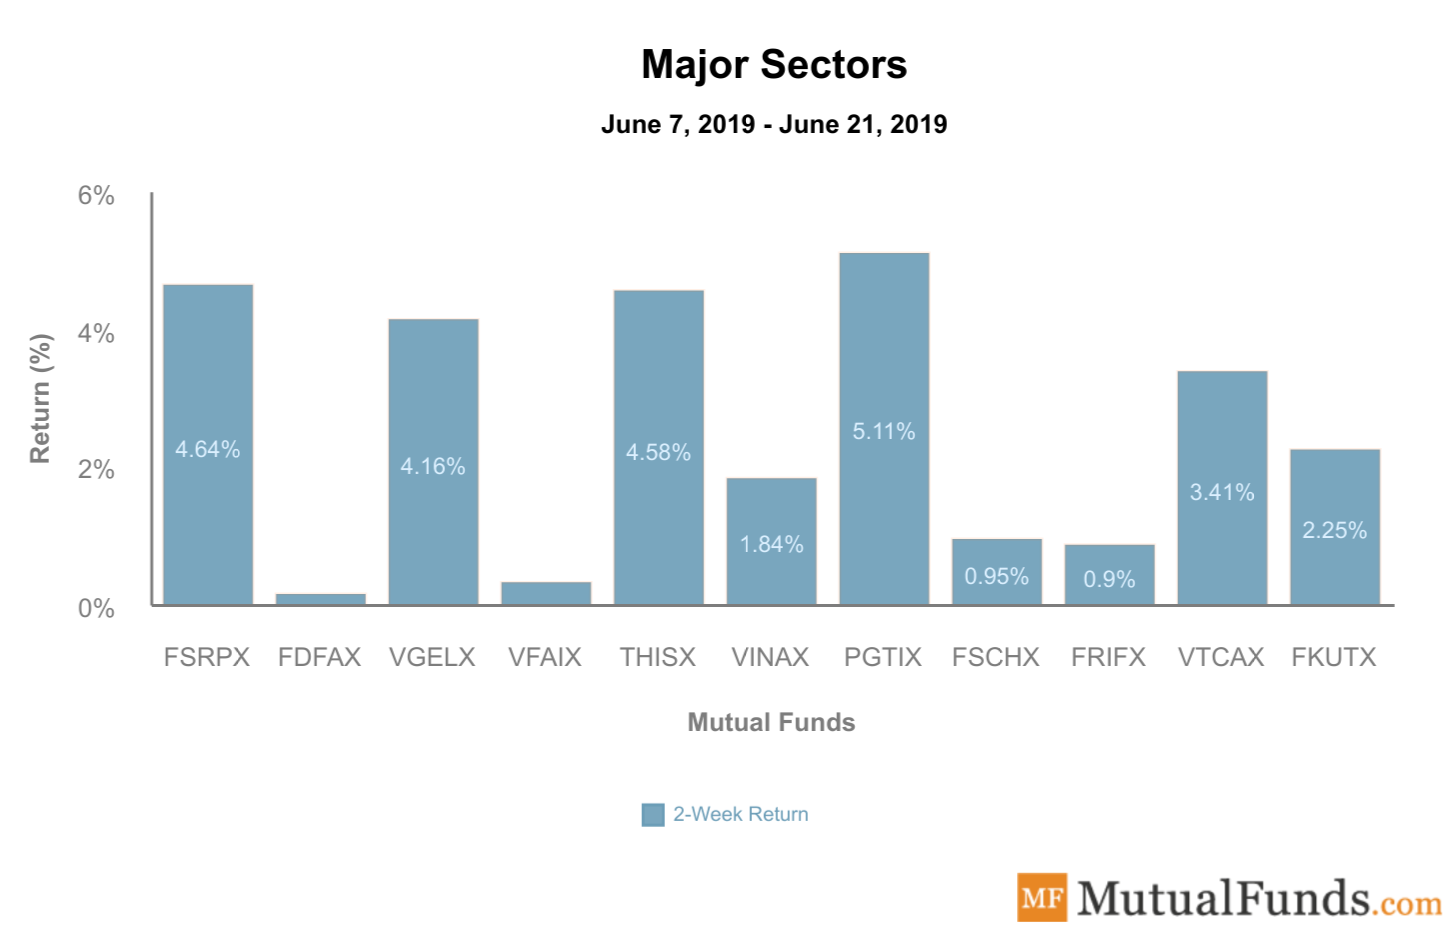 Major Sectors Performance June 25, 2019